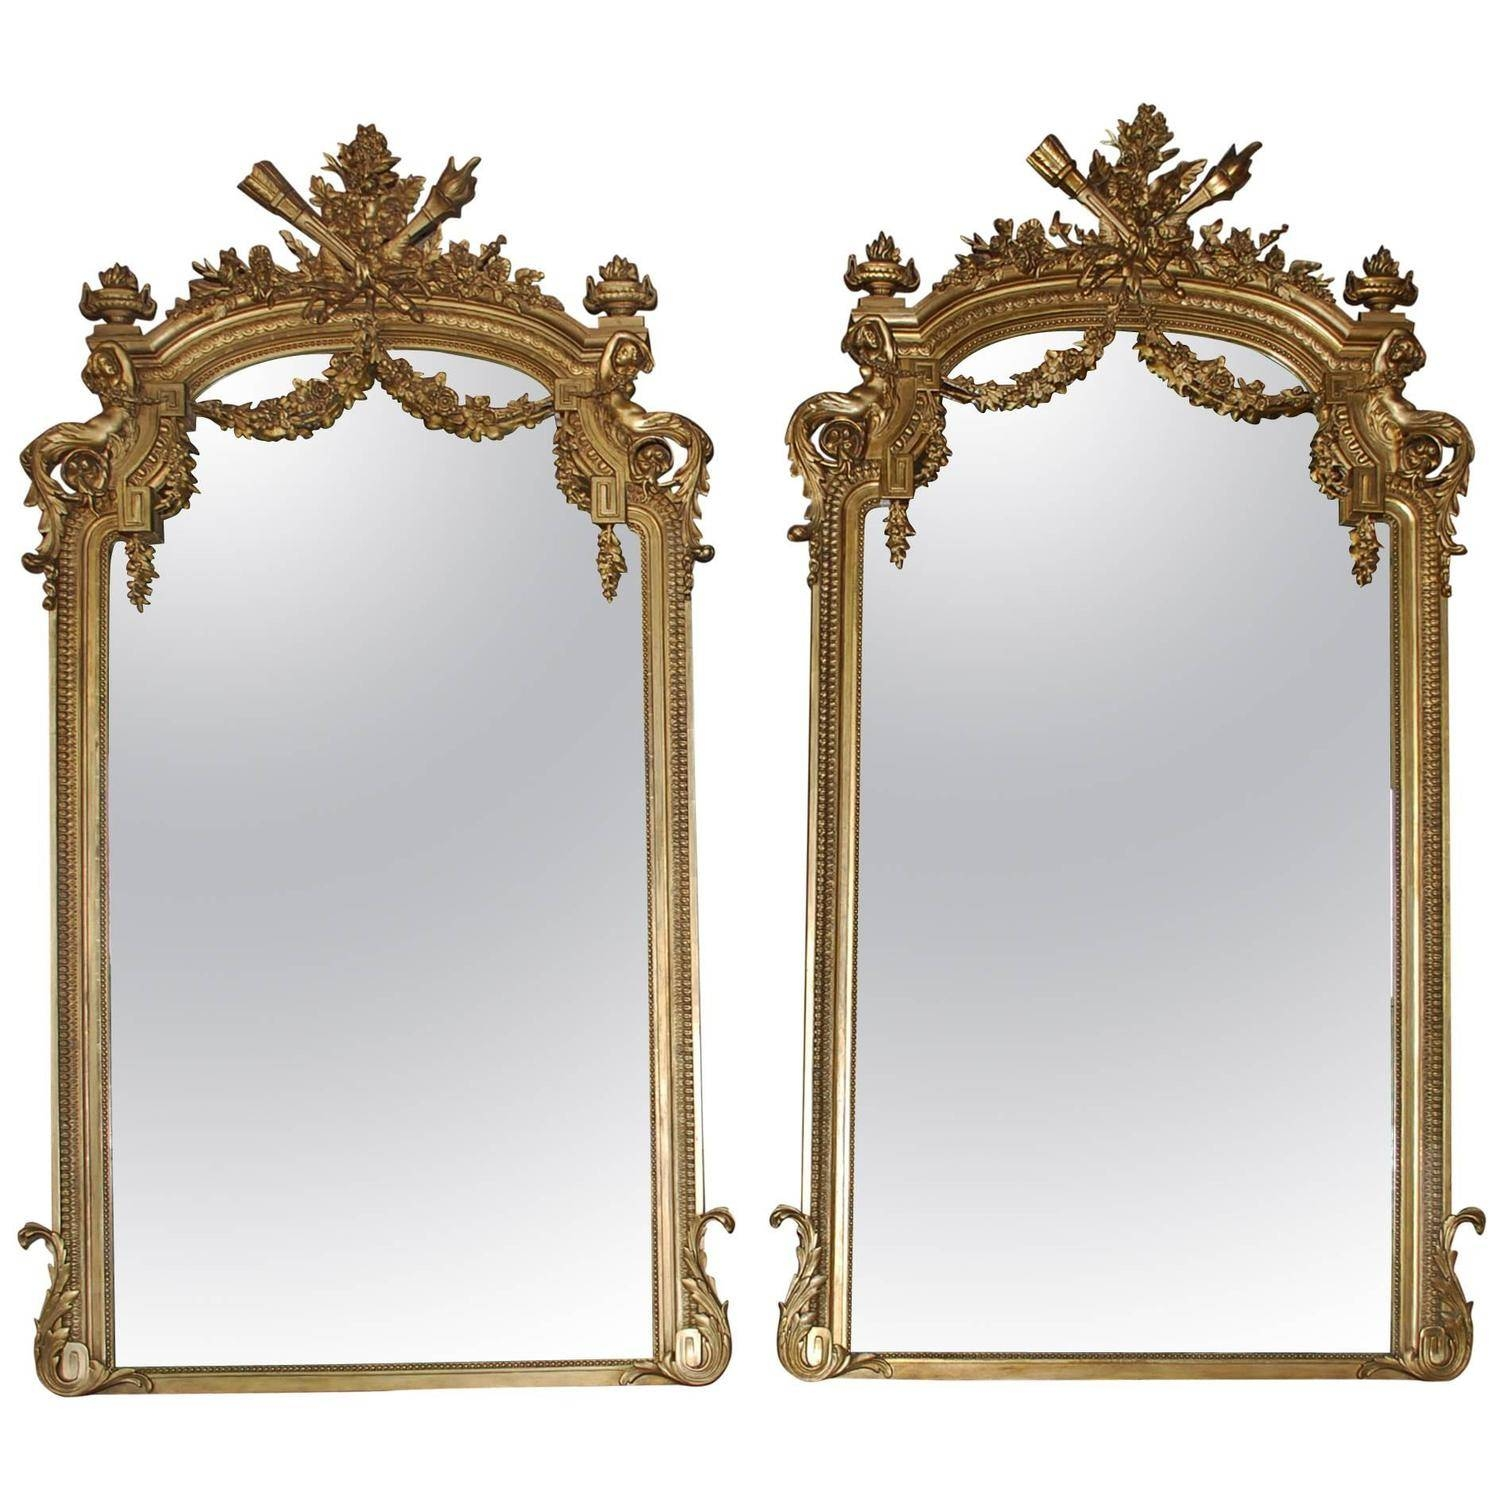 Pair Of 19Th Century Large Gold Gilded Mirror At 1Stdibs with Large Gold Antique Mirrors (Image 14 of 15)